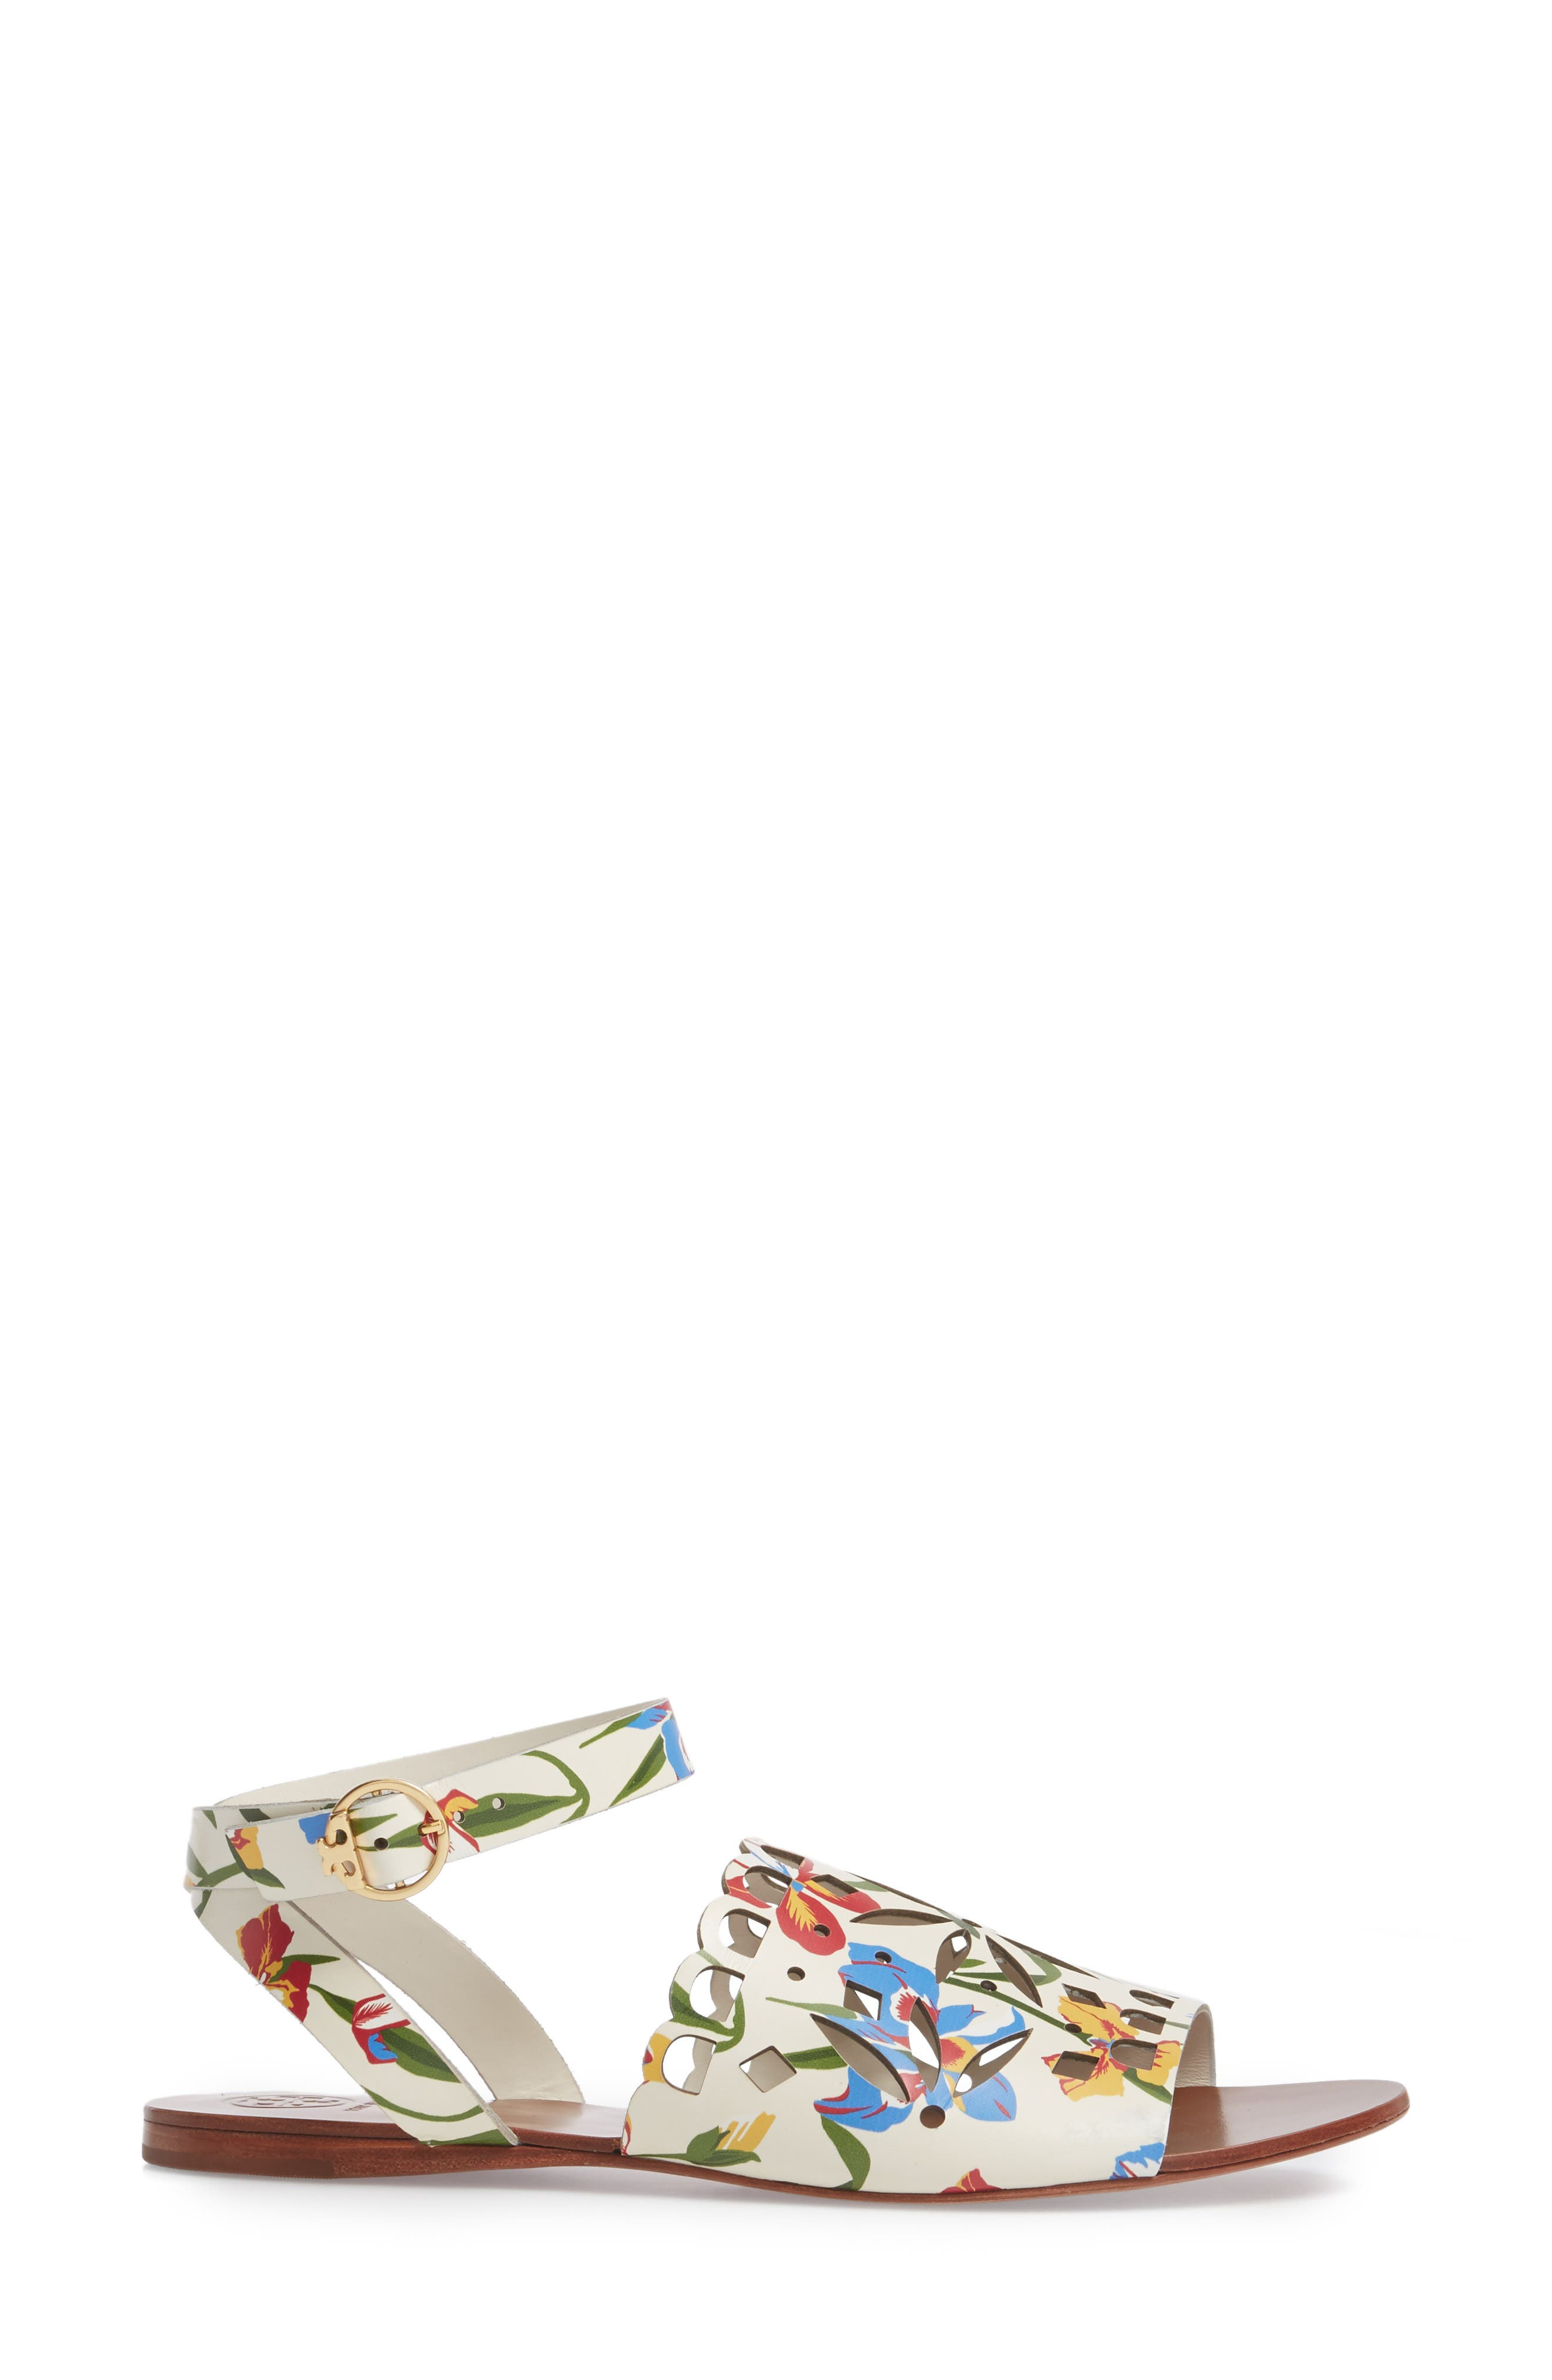 May Printed Floral Ankle Strap Sandal,                             Alternate thumbnail 3, color,                             100